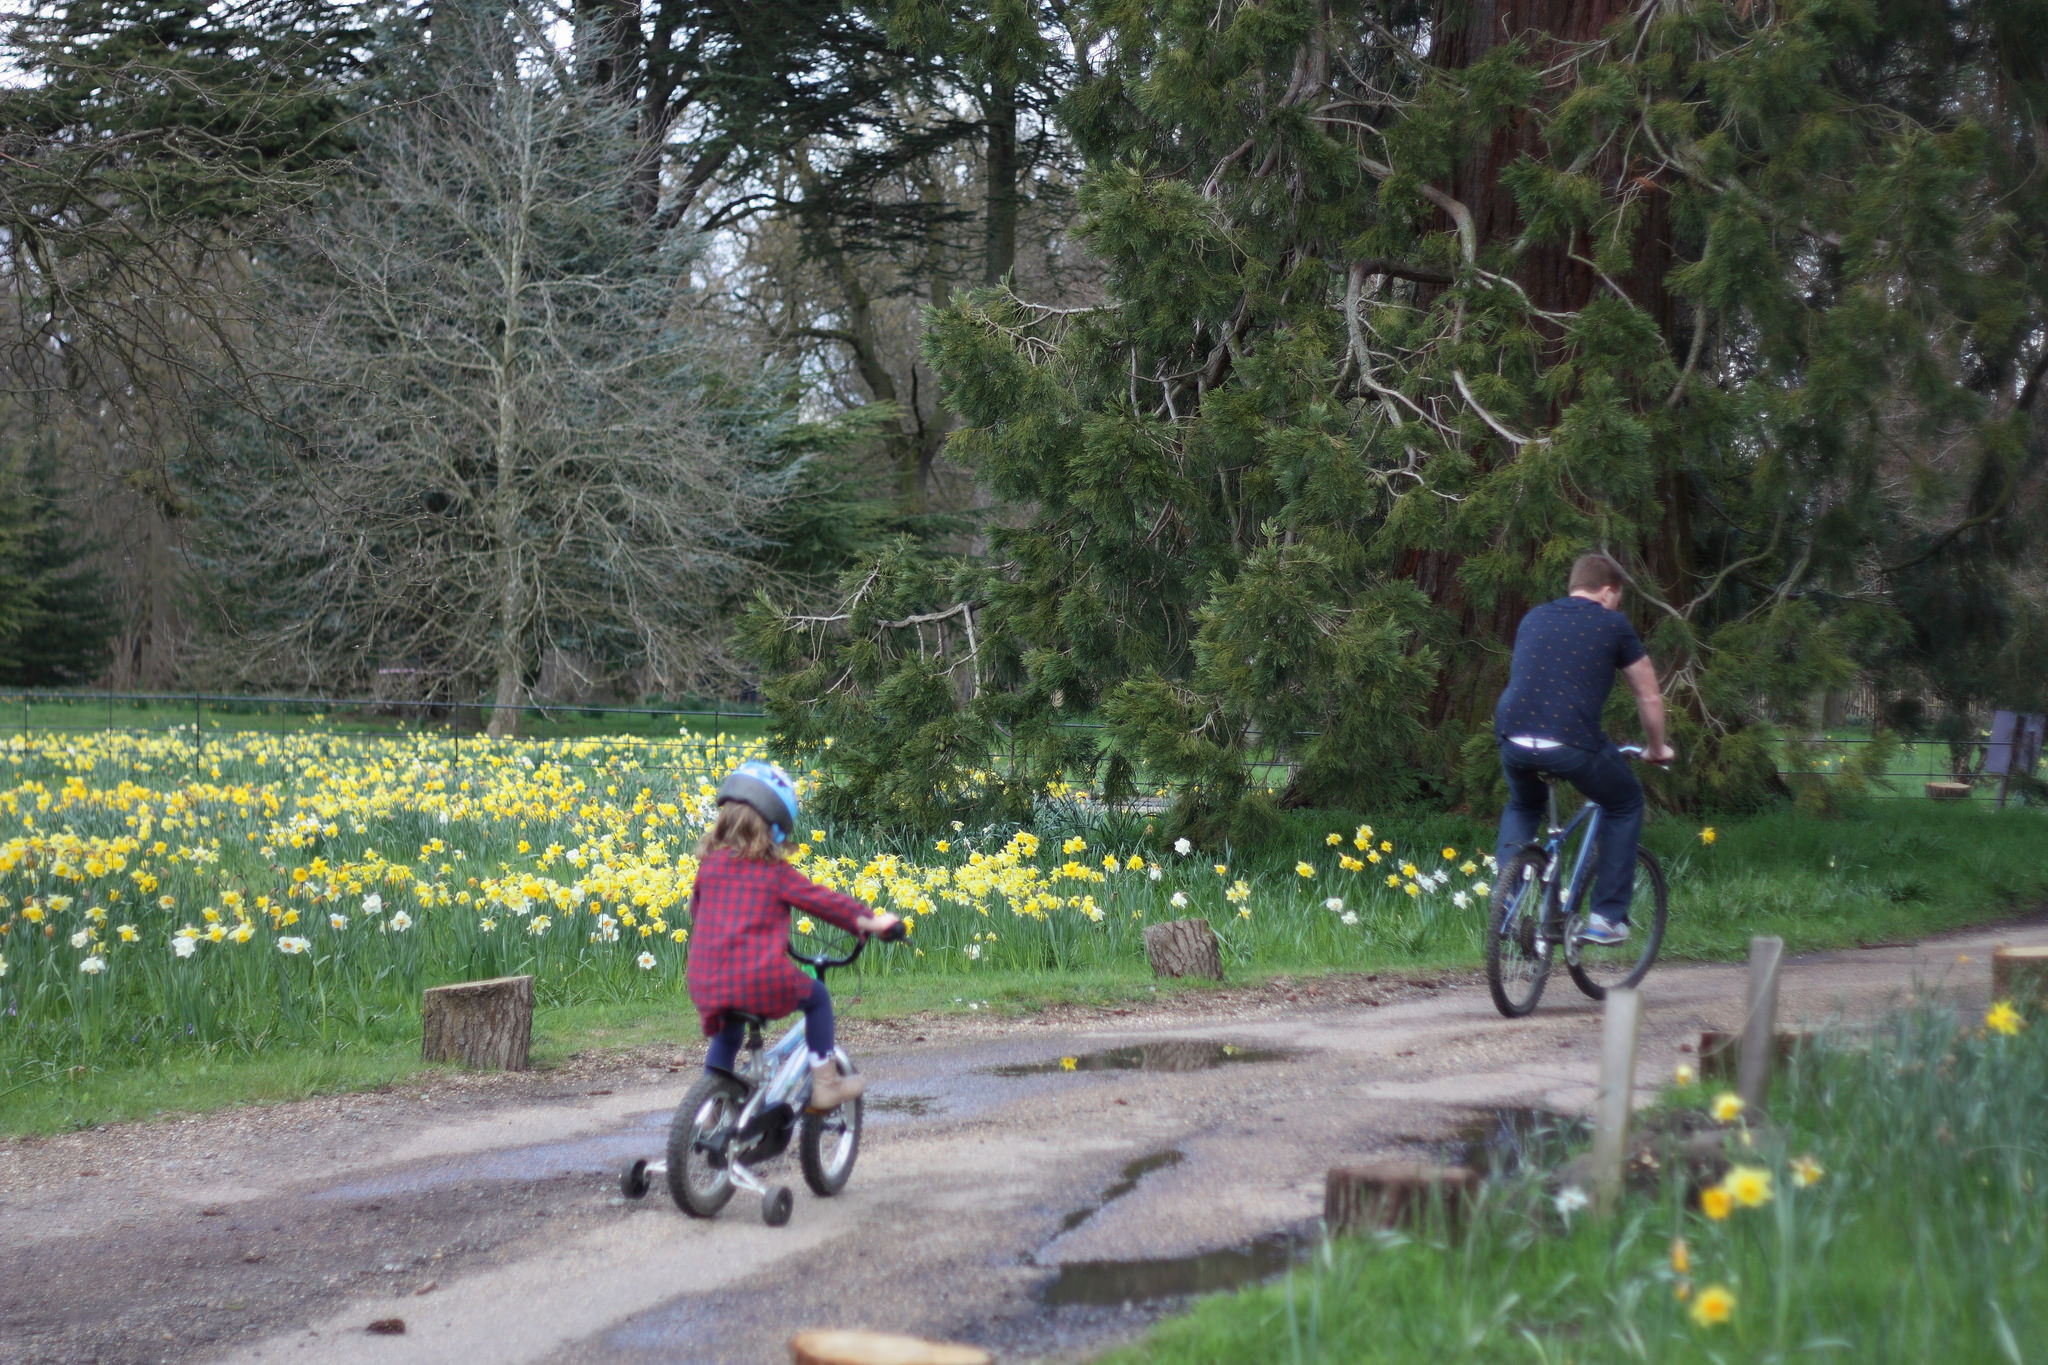 Child on a bike ride with dad